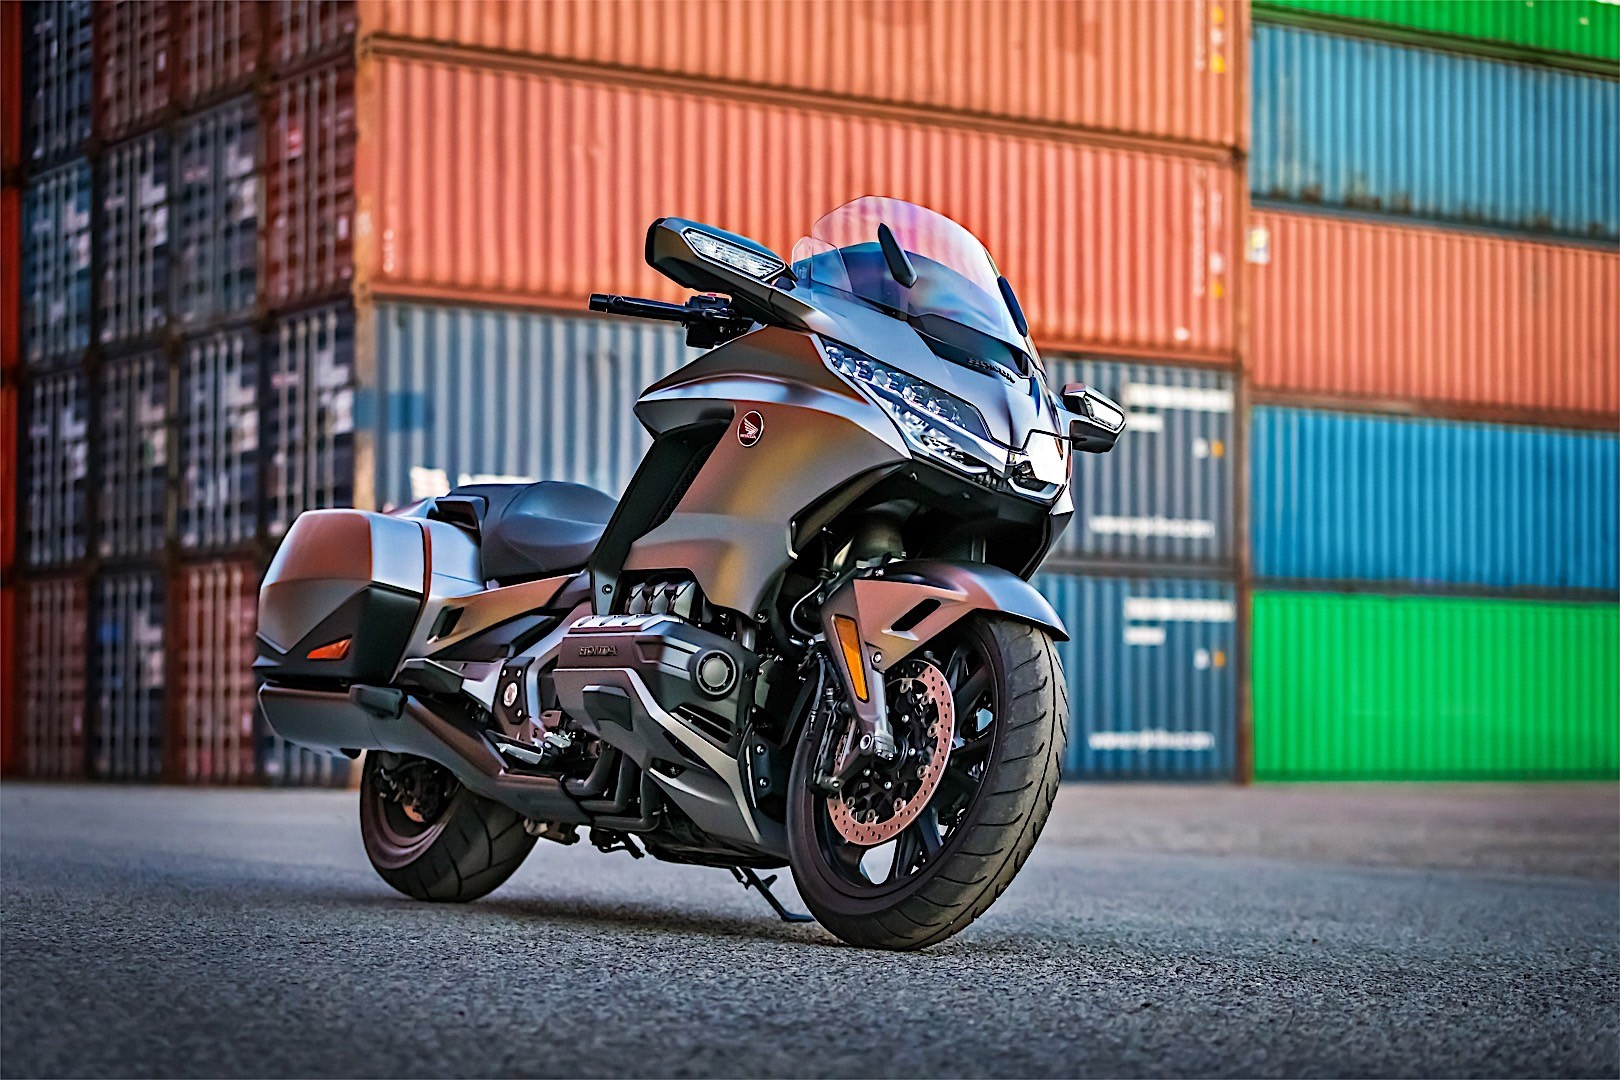 2018 Honda Gold Wing Officially Revealed With Sharper ...